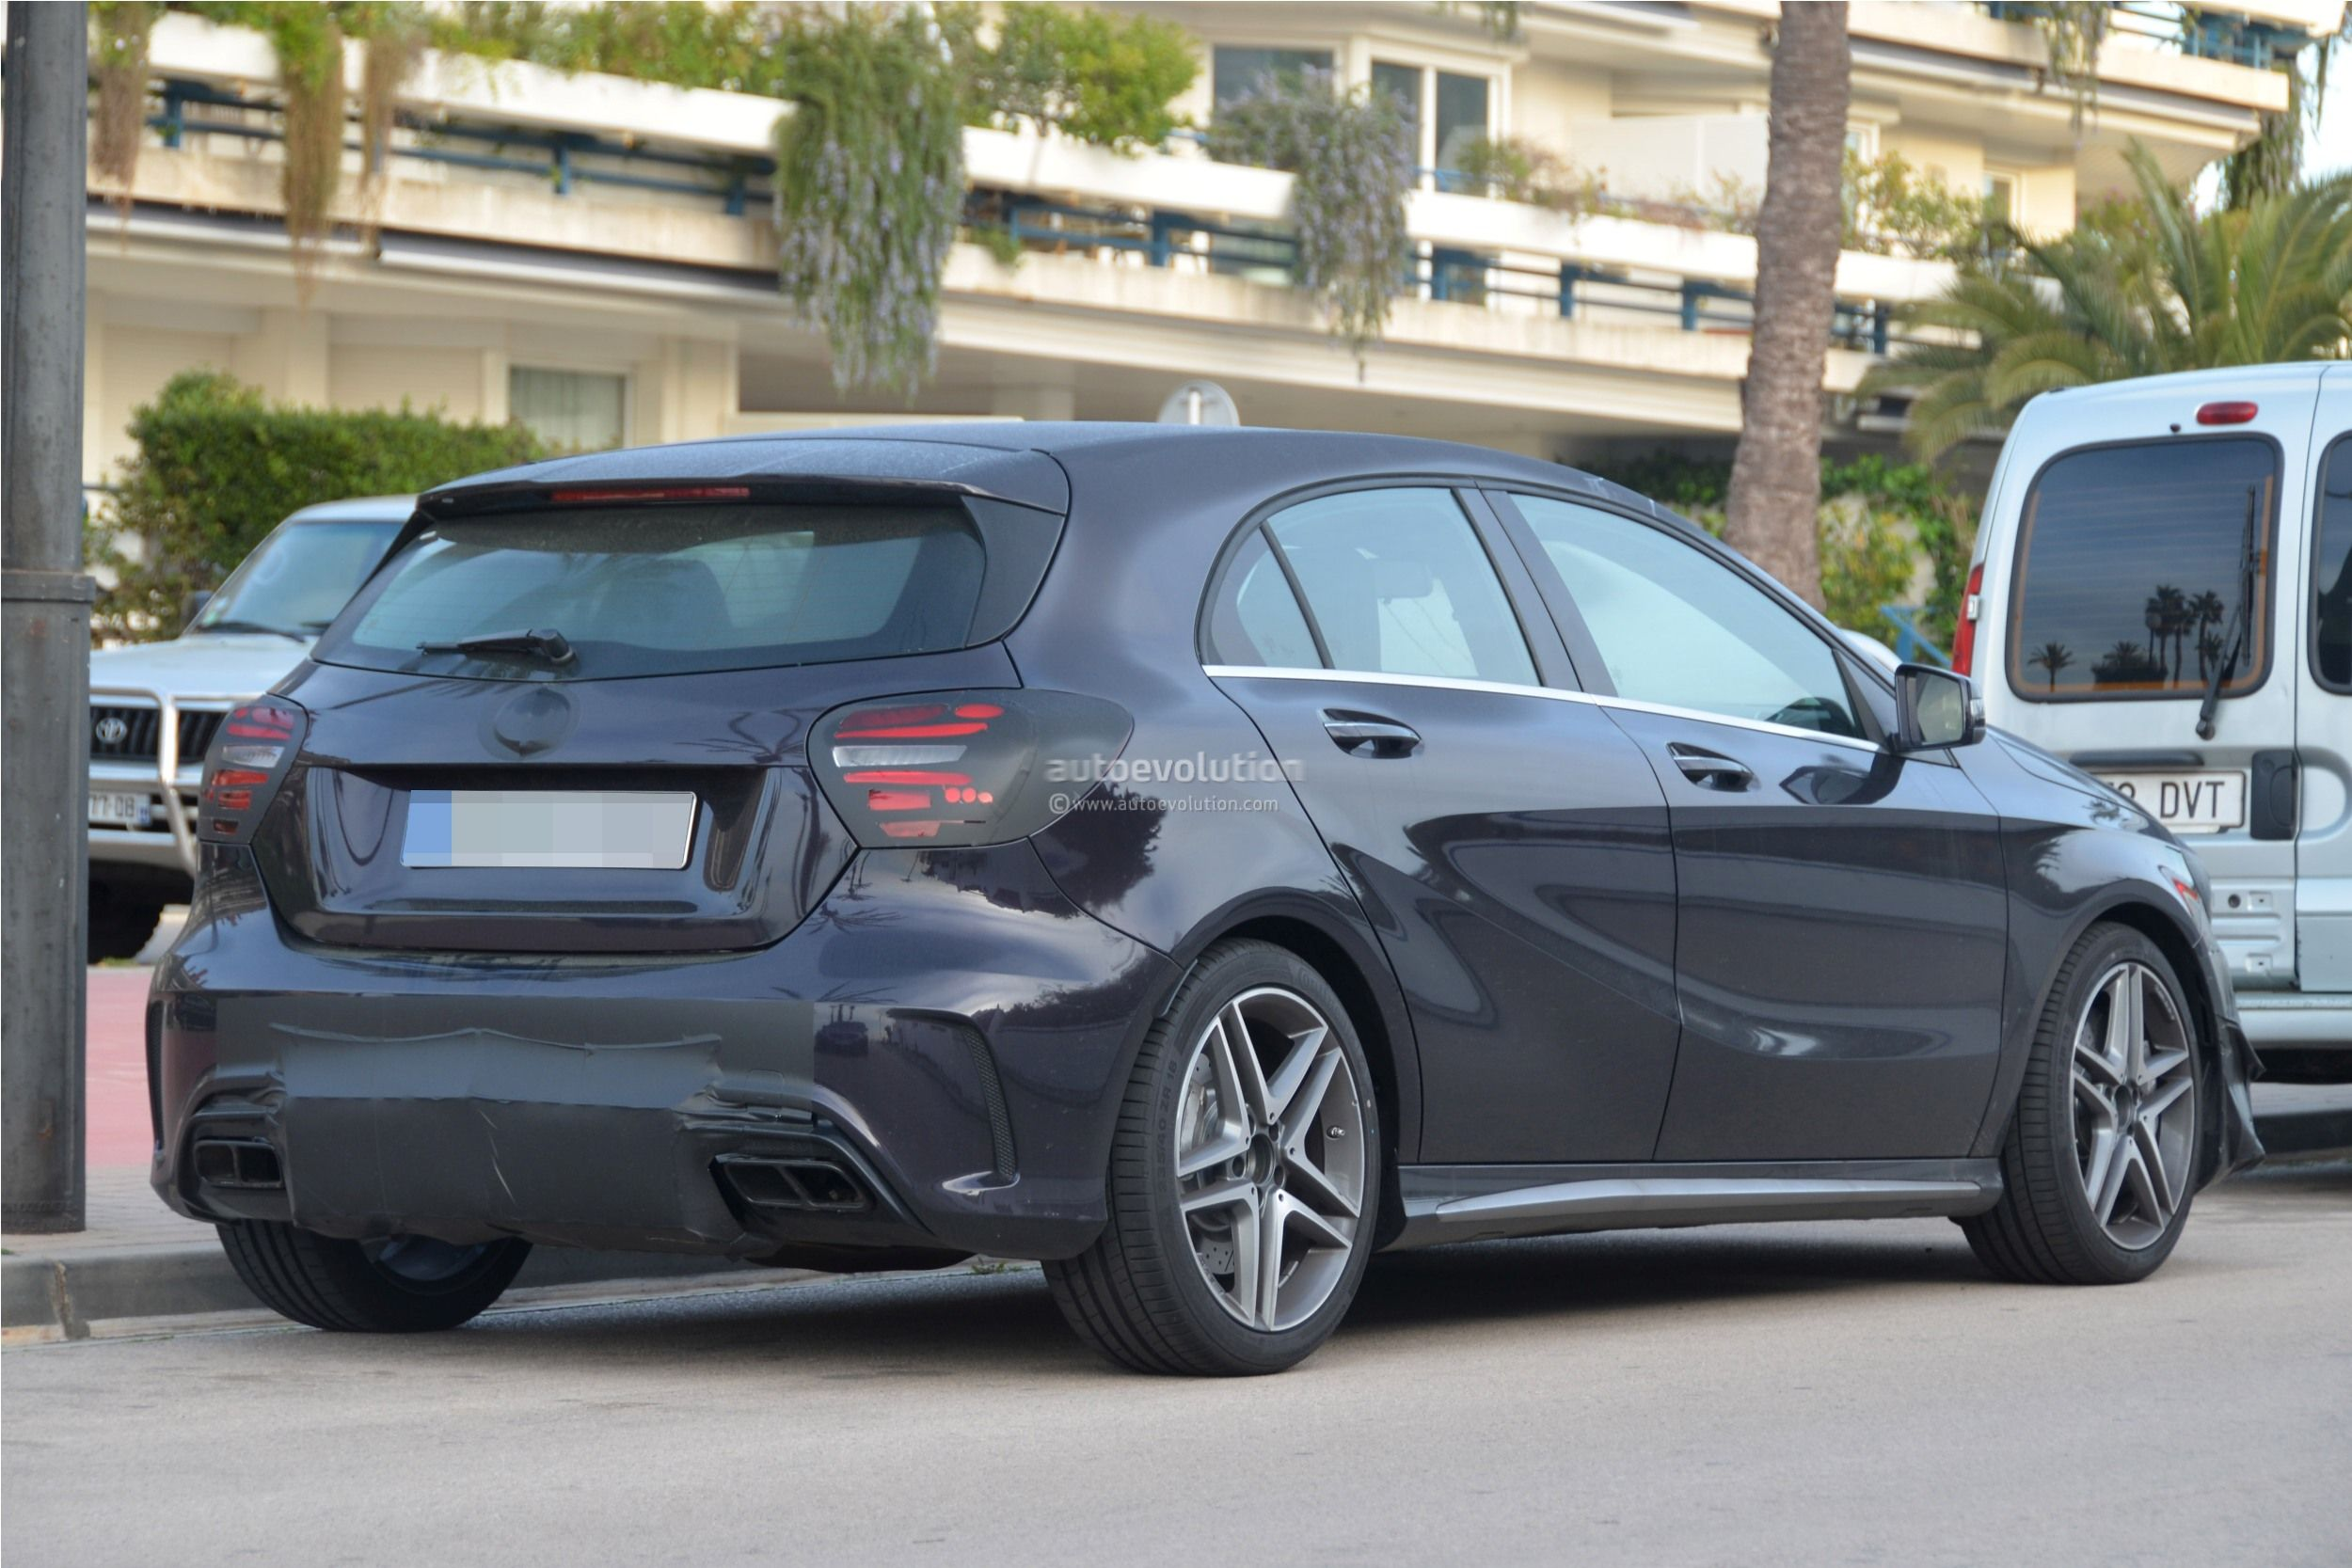 2016 - [Mercedes] Classe A restylée - Page 5 2016-mercedes-benz-a-45-amg-facelift-spied-photo-gallery_14